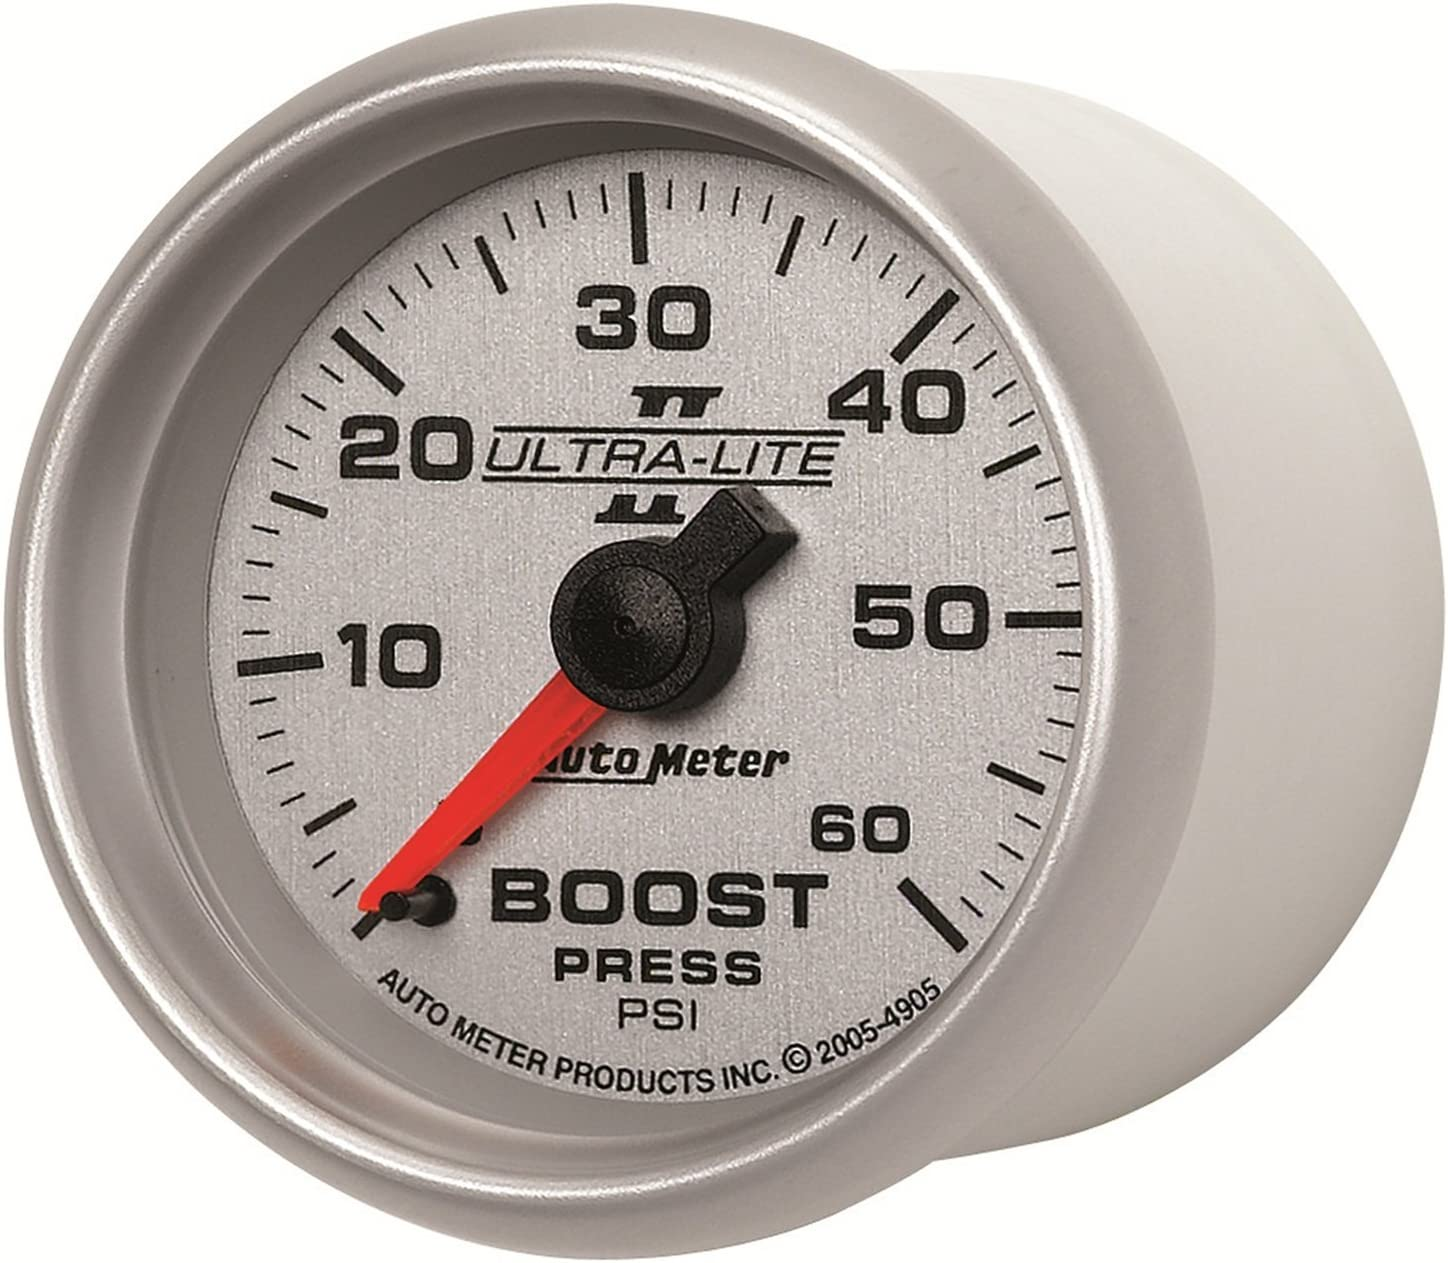 Auto Meter 4905 Ultra-Lite Gauge II All stores are sold Boost Max 42% OFF Mechanical